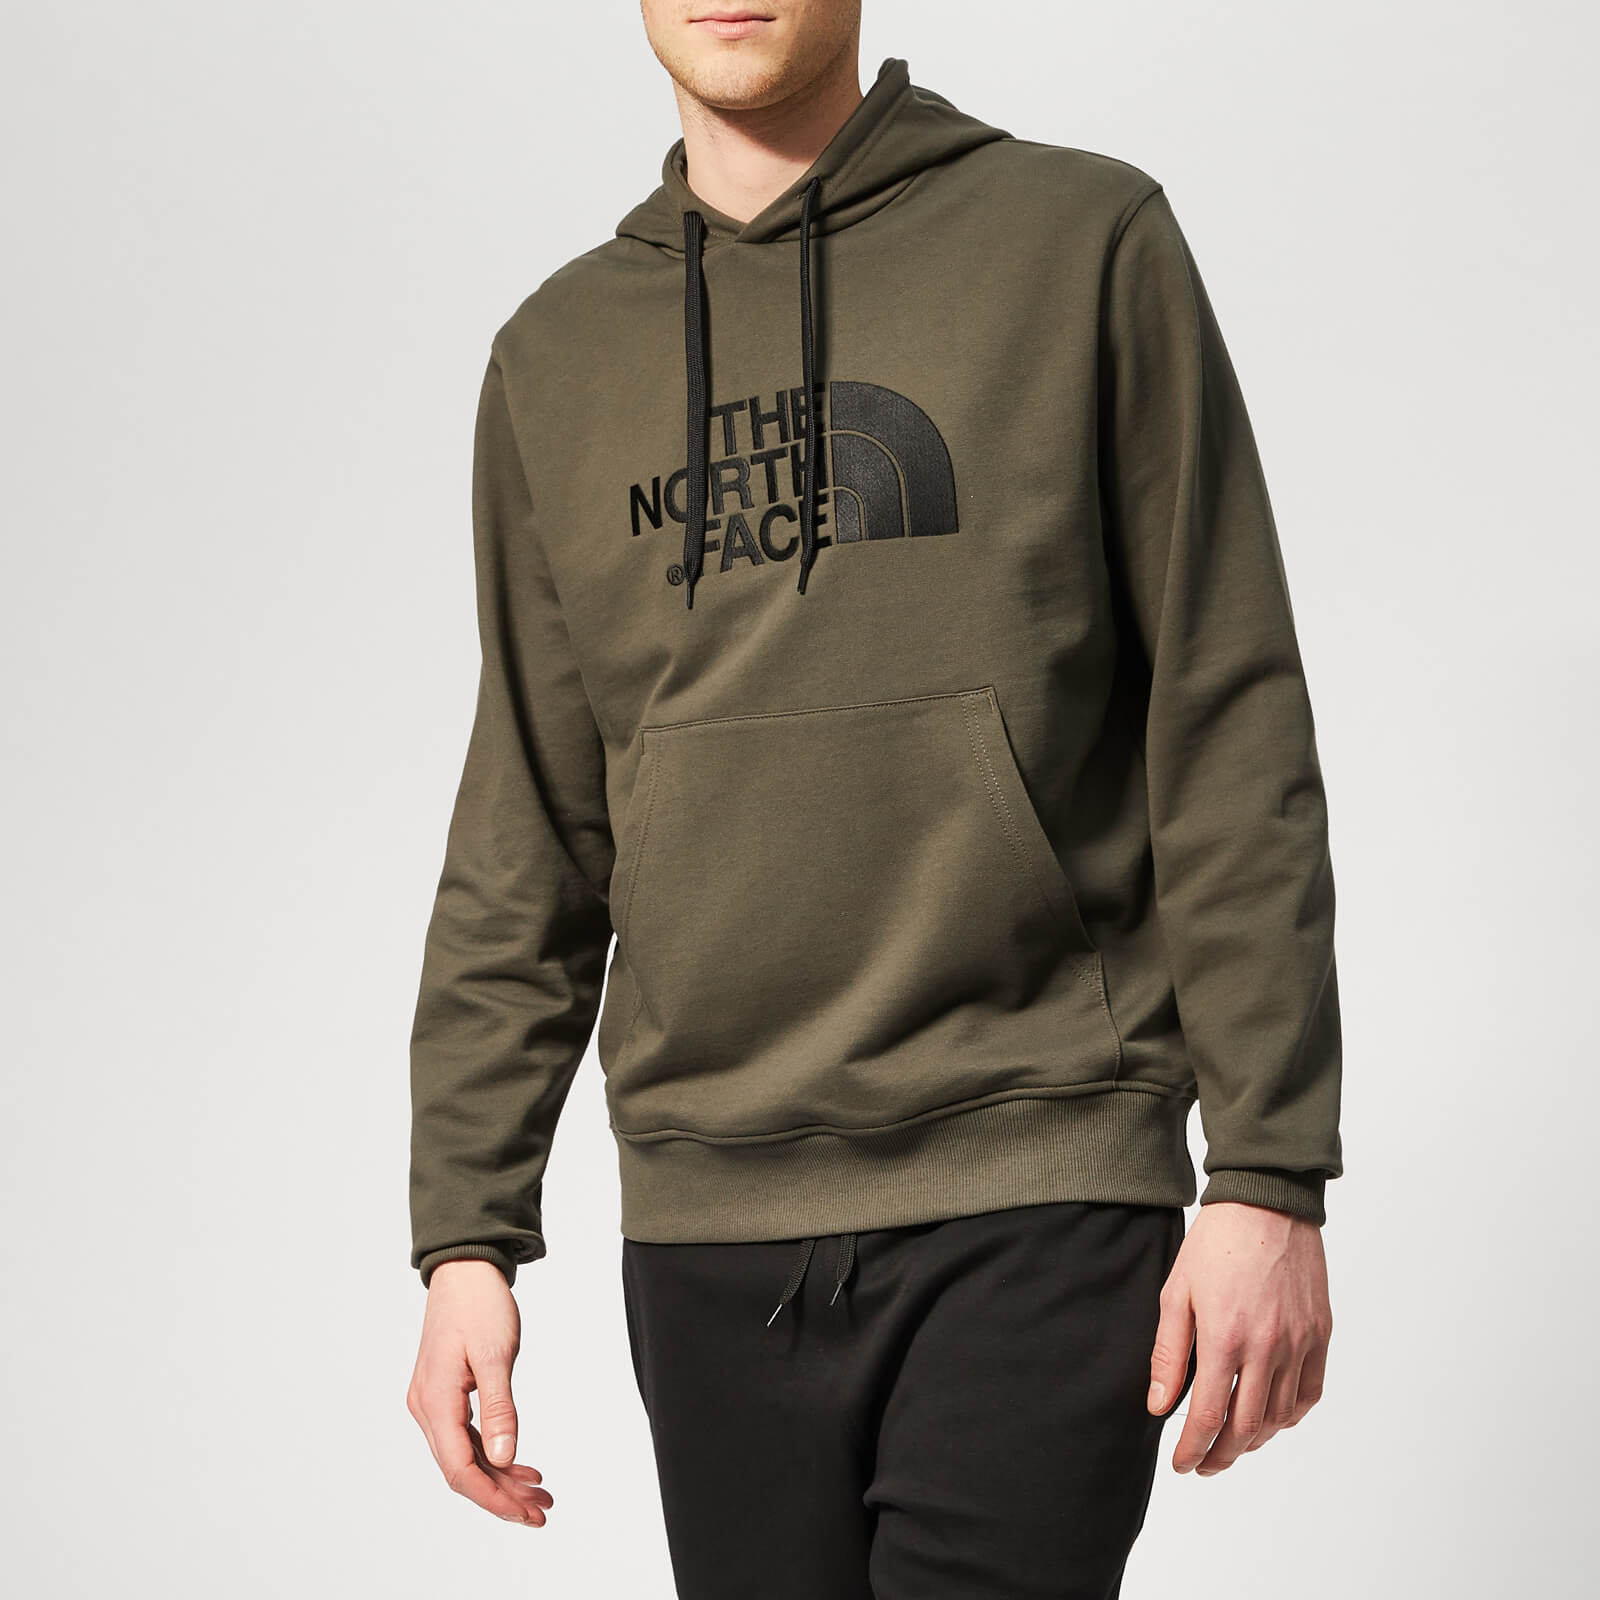 e549b97f5 The North Face Men's Light Drew Peak Pullover Hoody - New Taupe Green